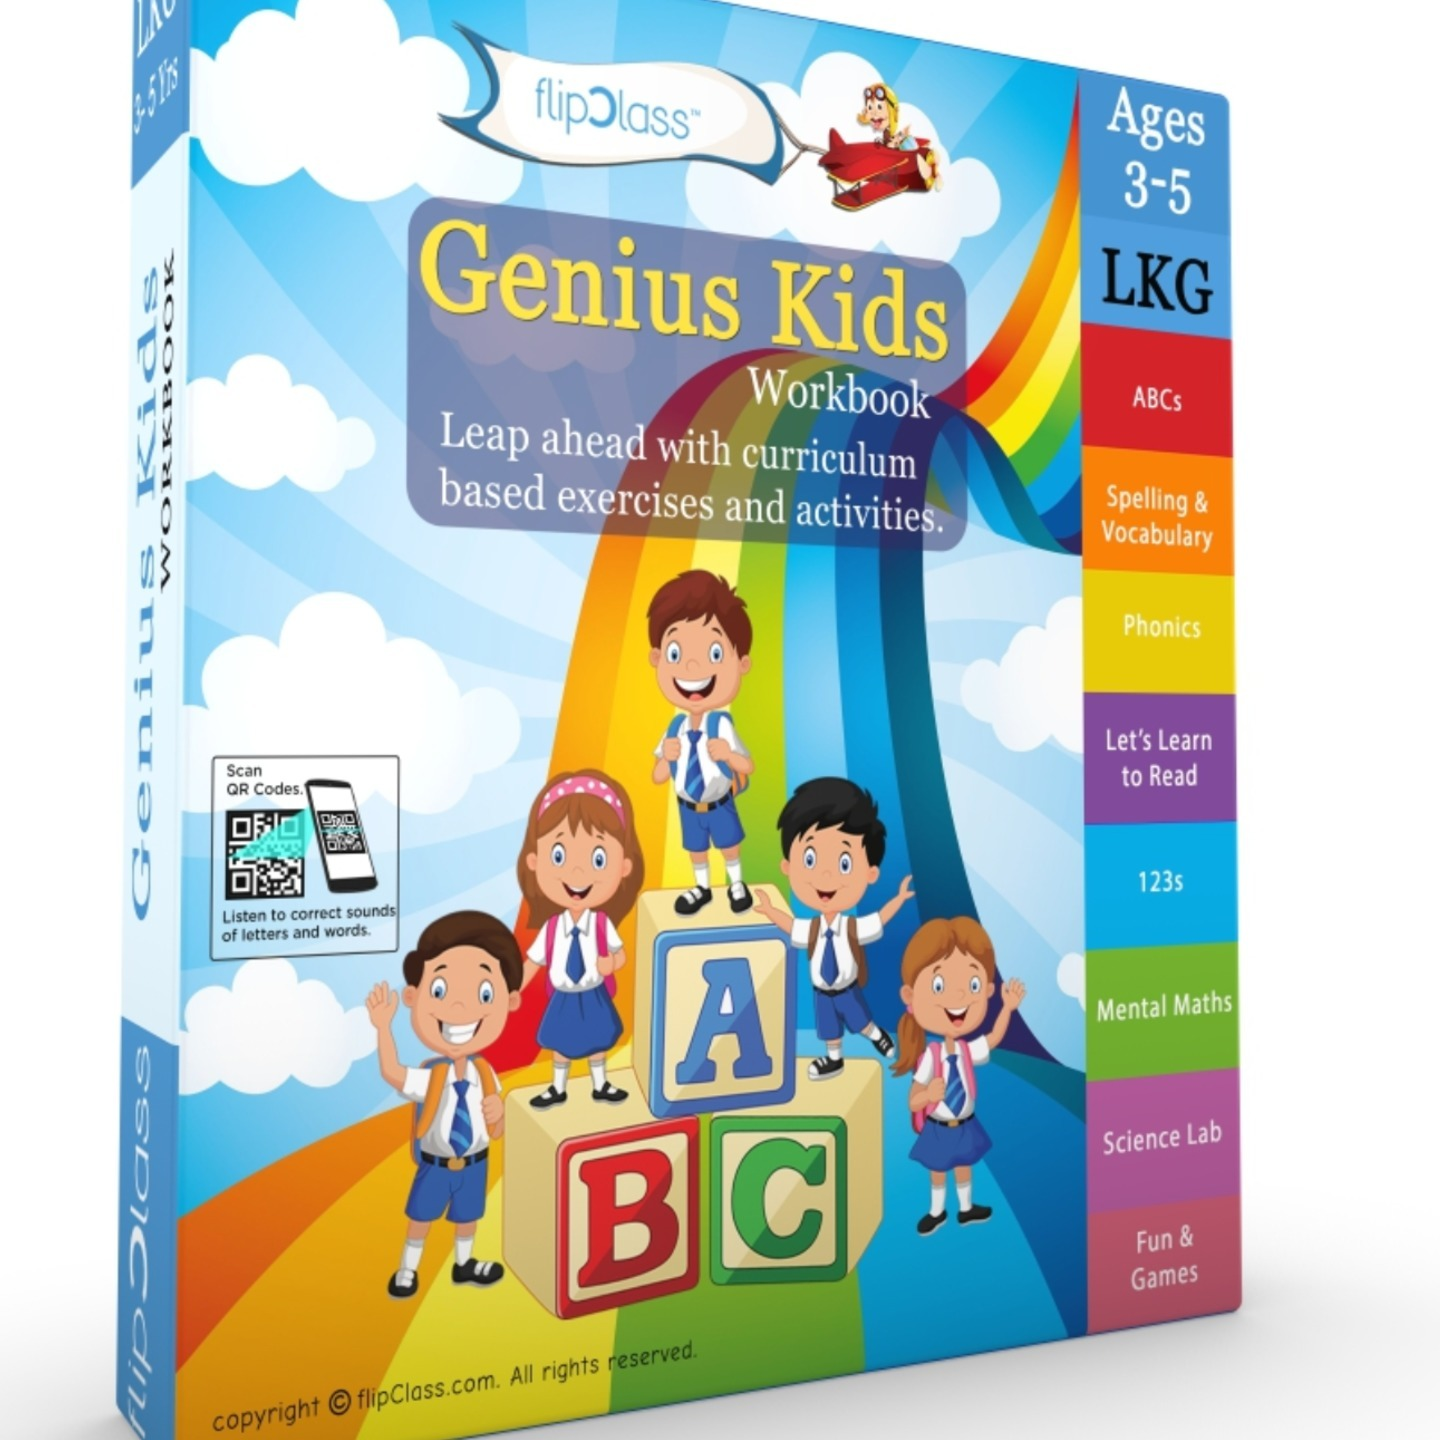 Flipclass Genius Kids Worksheets